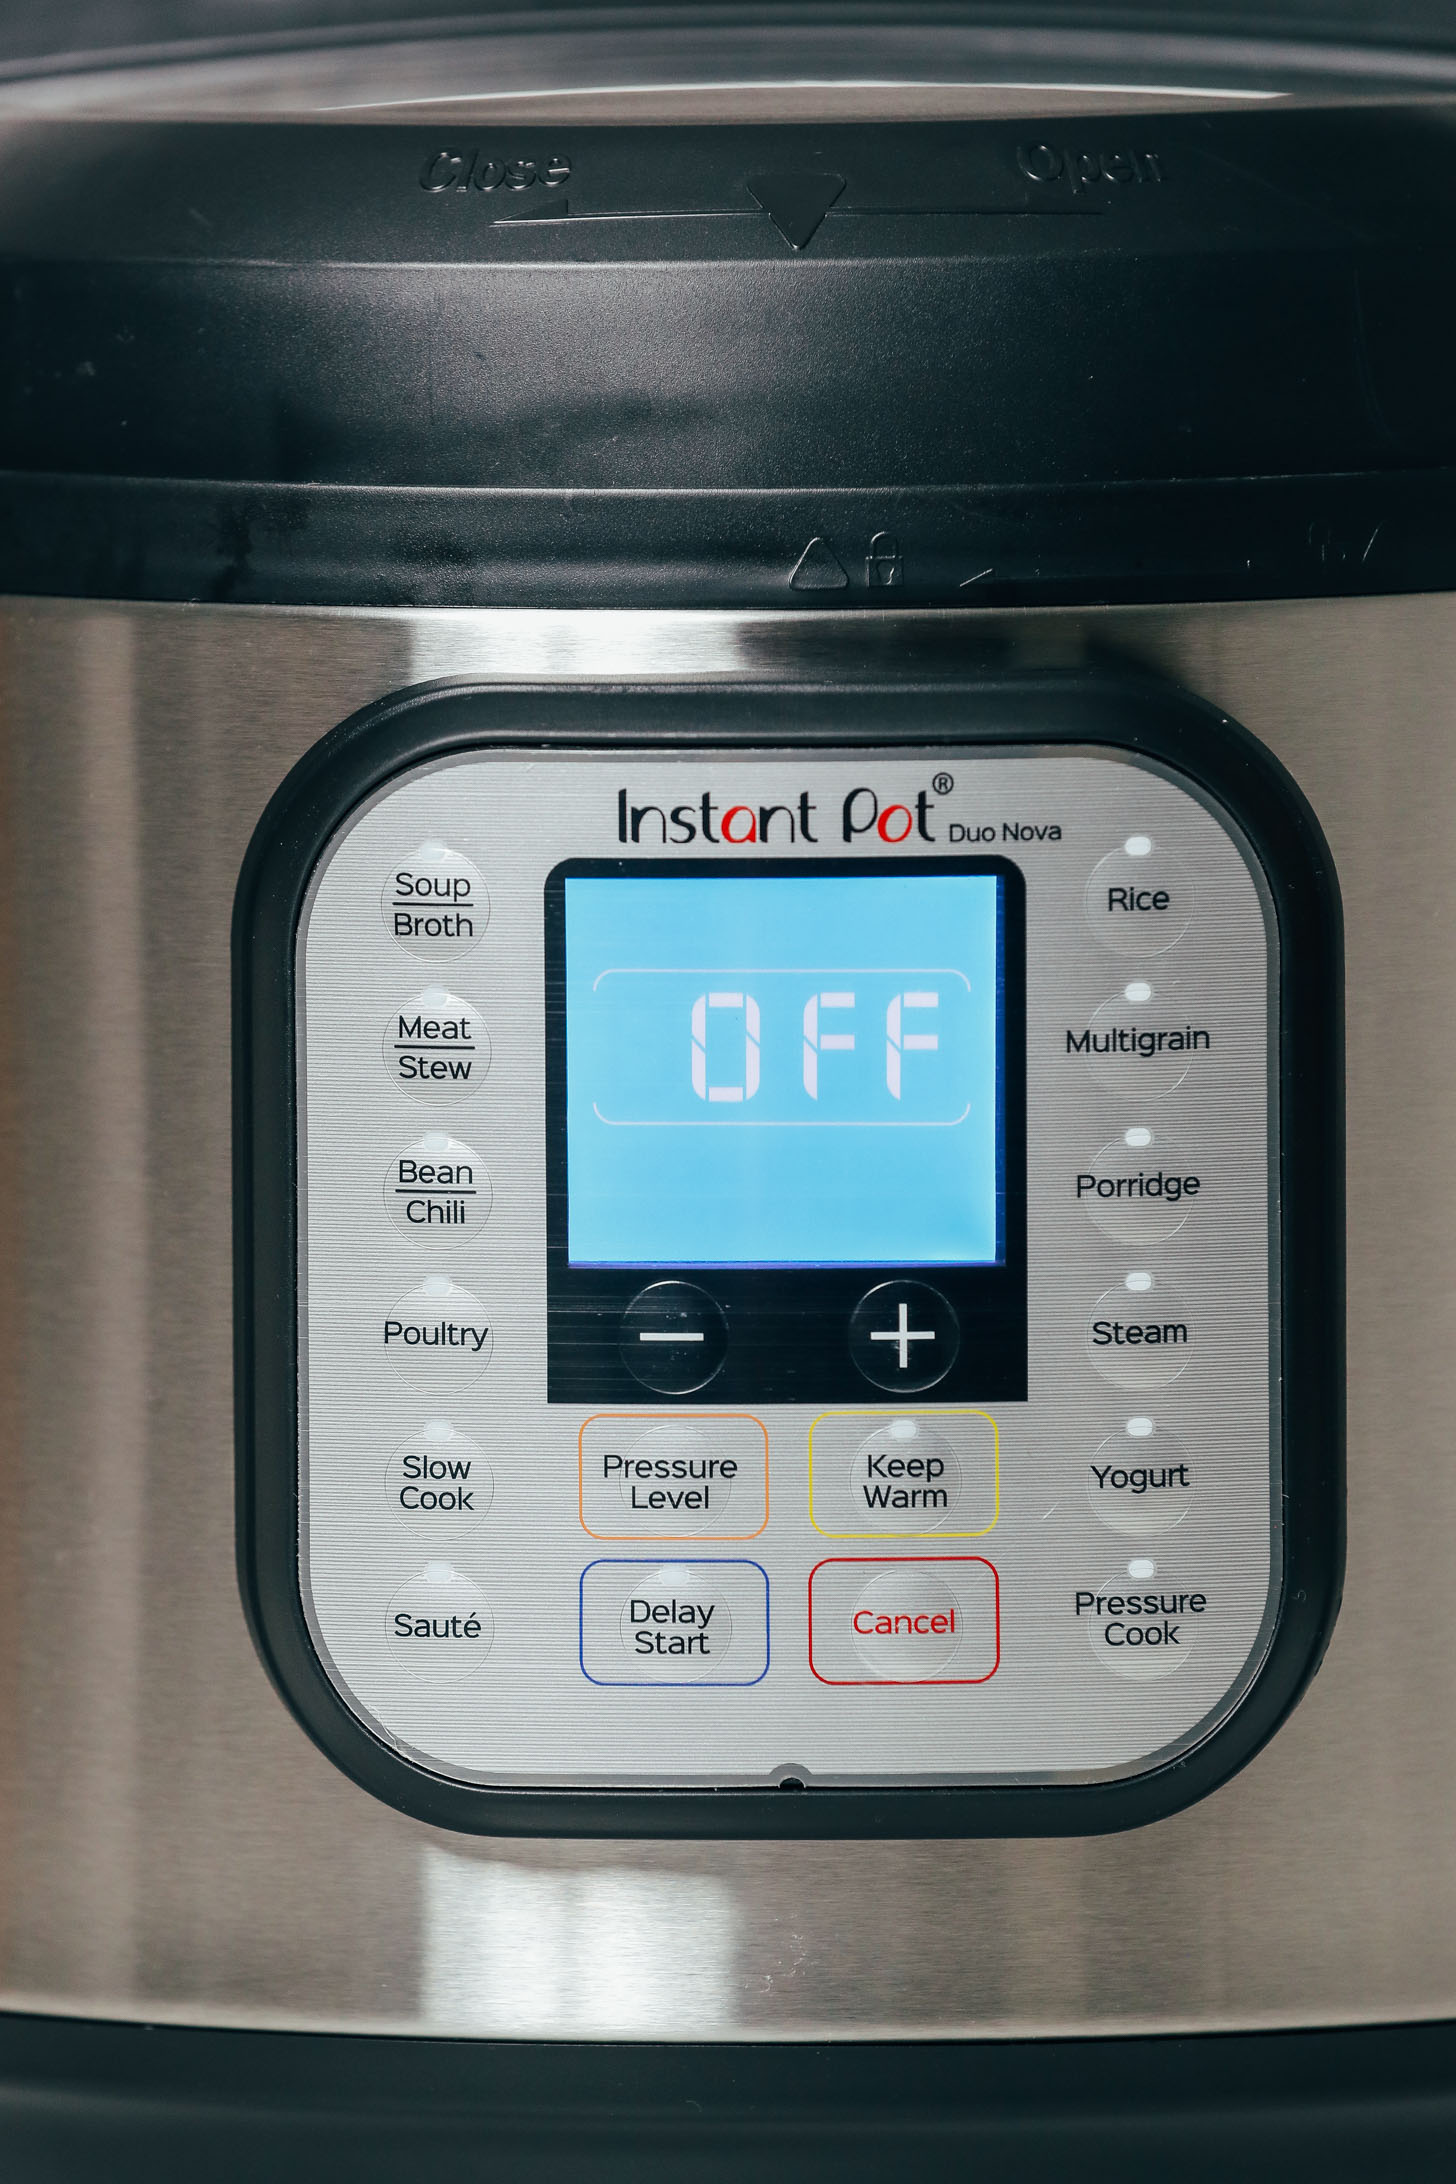 Front view of the Instant Pot Duo Nova display panel